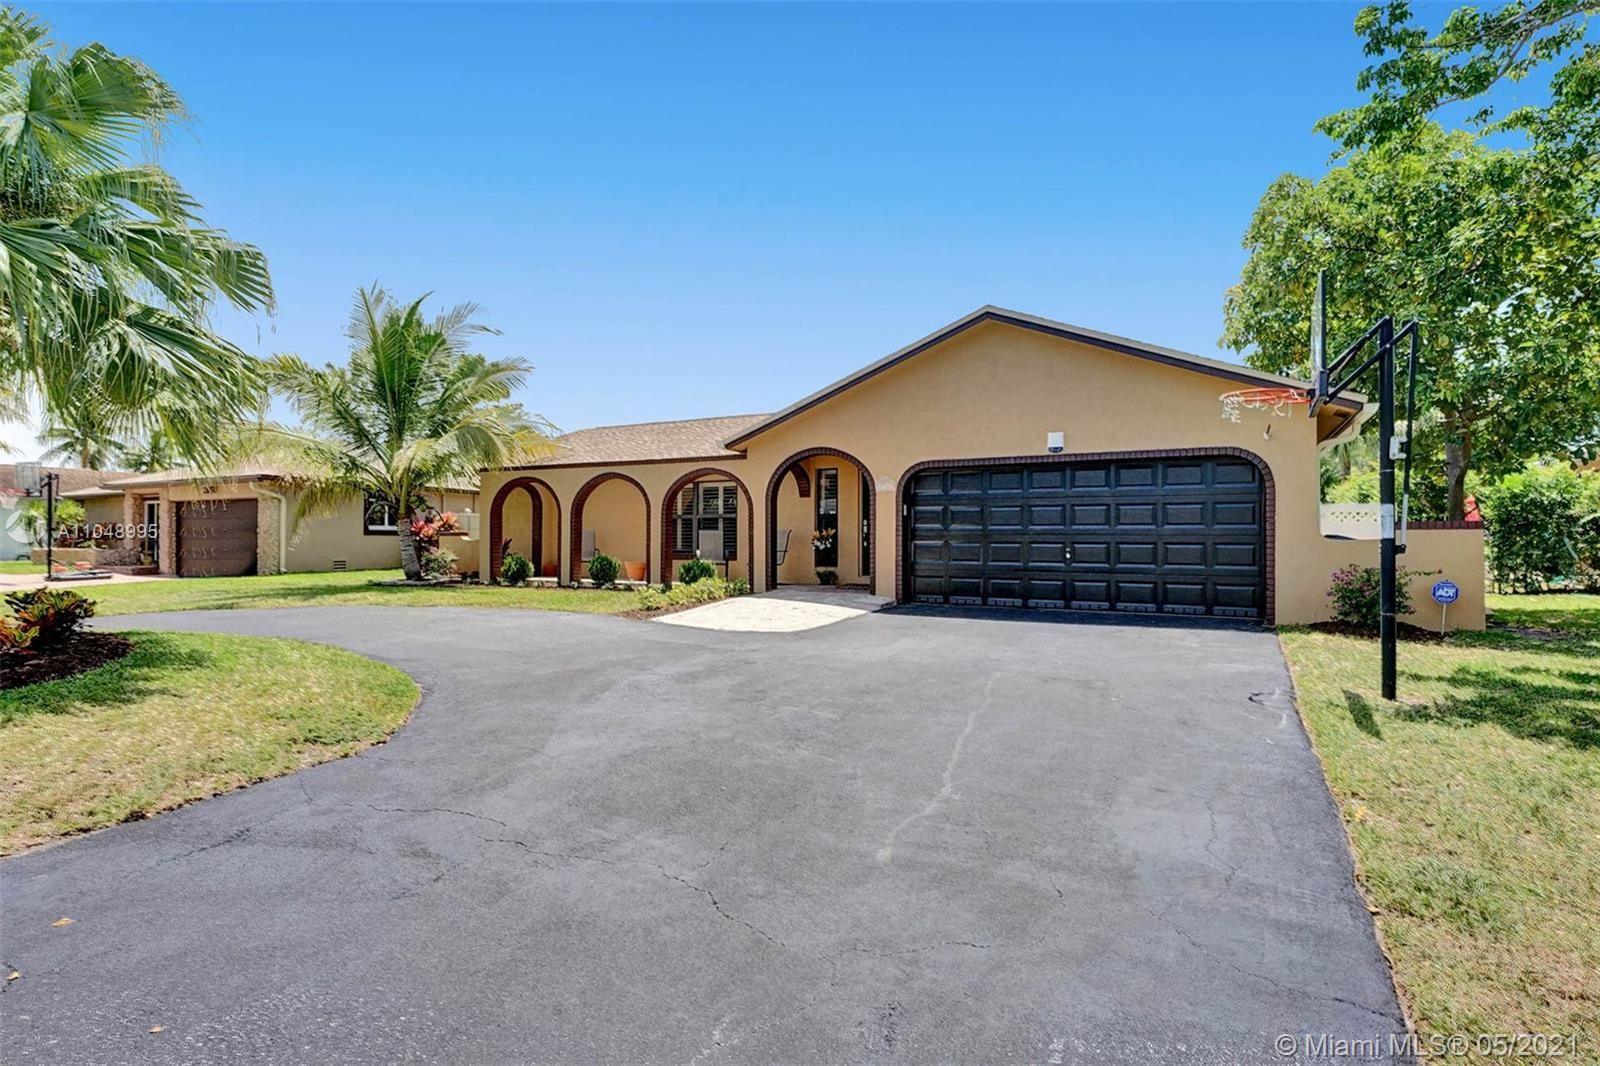 2702 NW 98th Way, Coral Springs, FL 33065 - #: A11048995